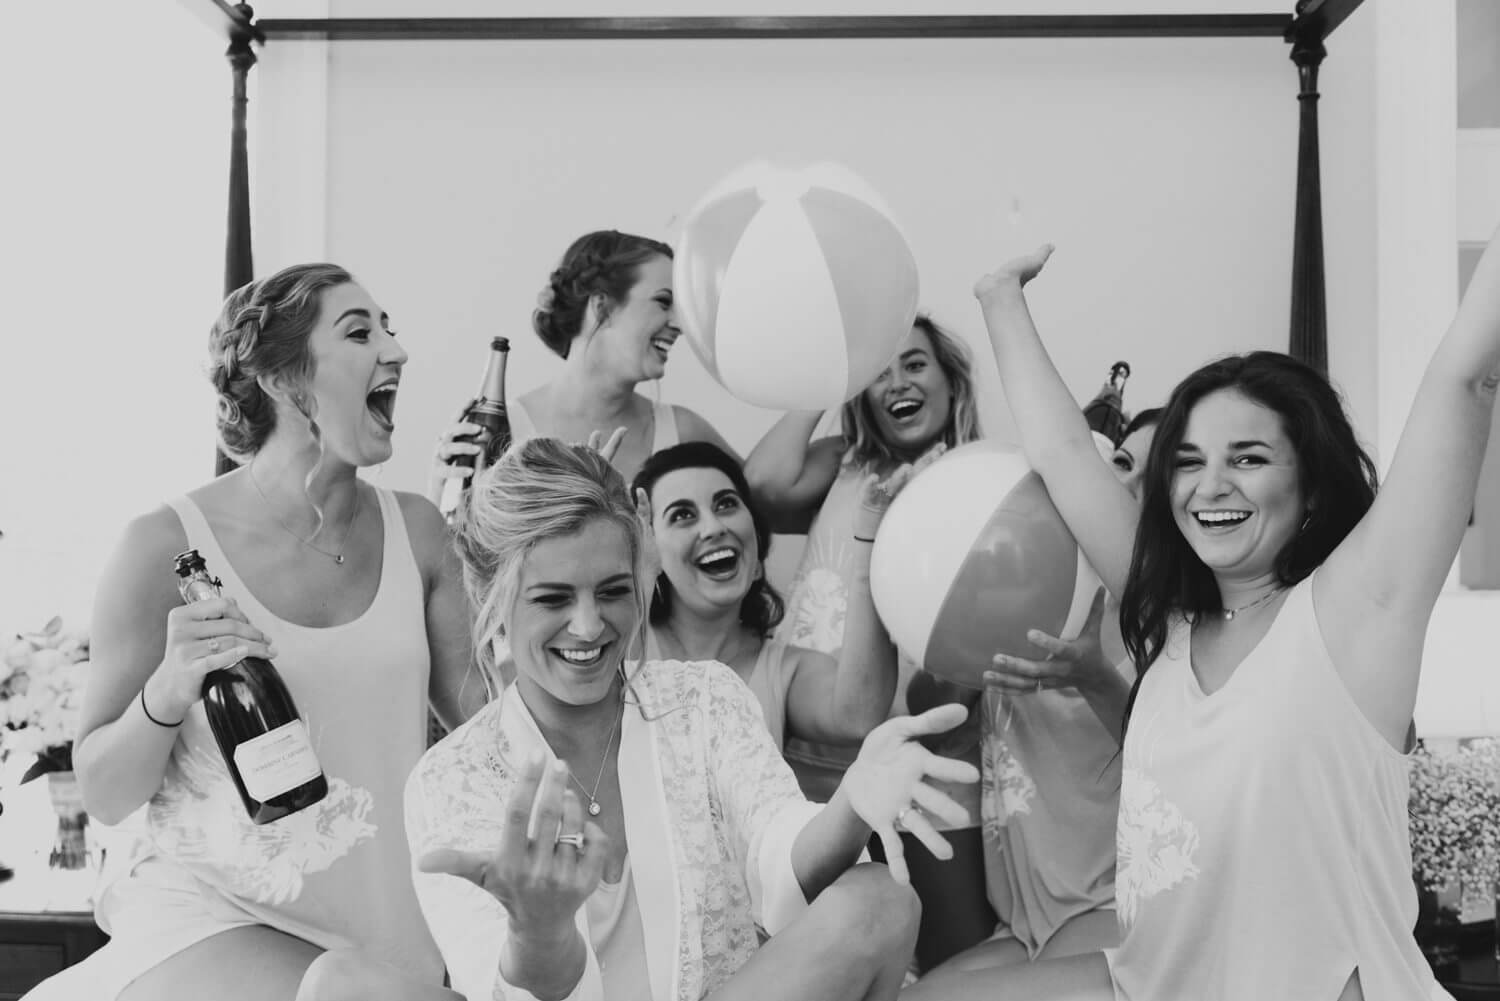 Freas Photography Southernmost House Wedding 39 - Boho Styled Key West Wedding at the Southernmost House in Key West, Florida